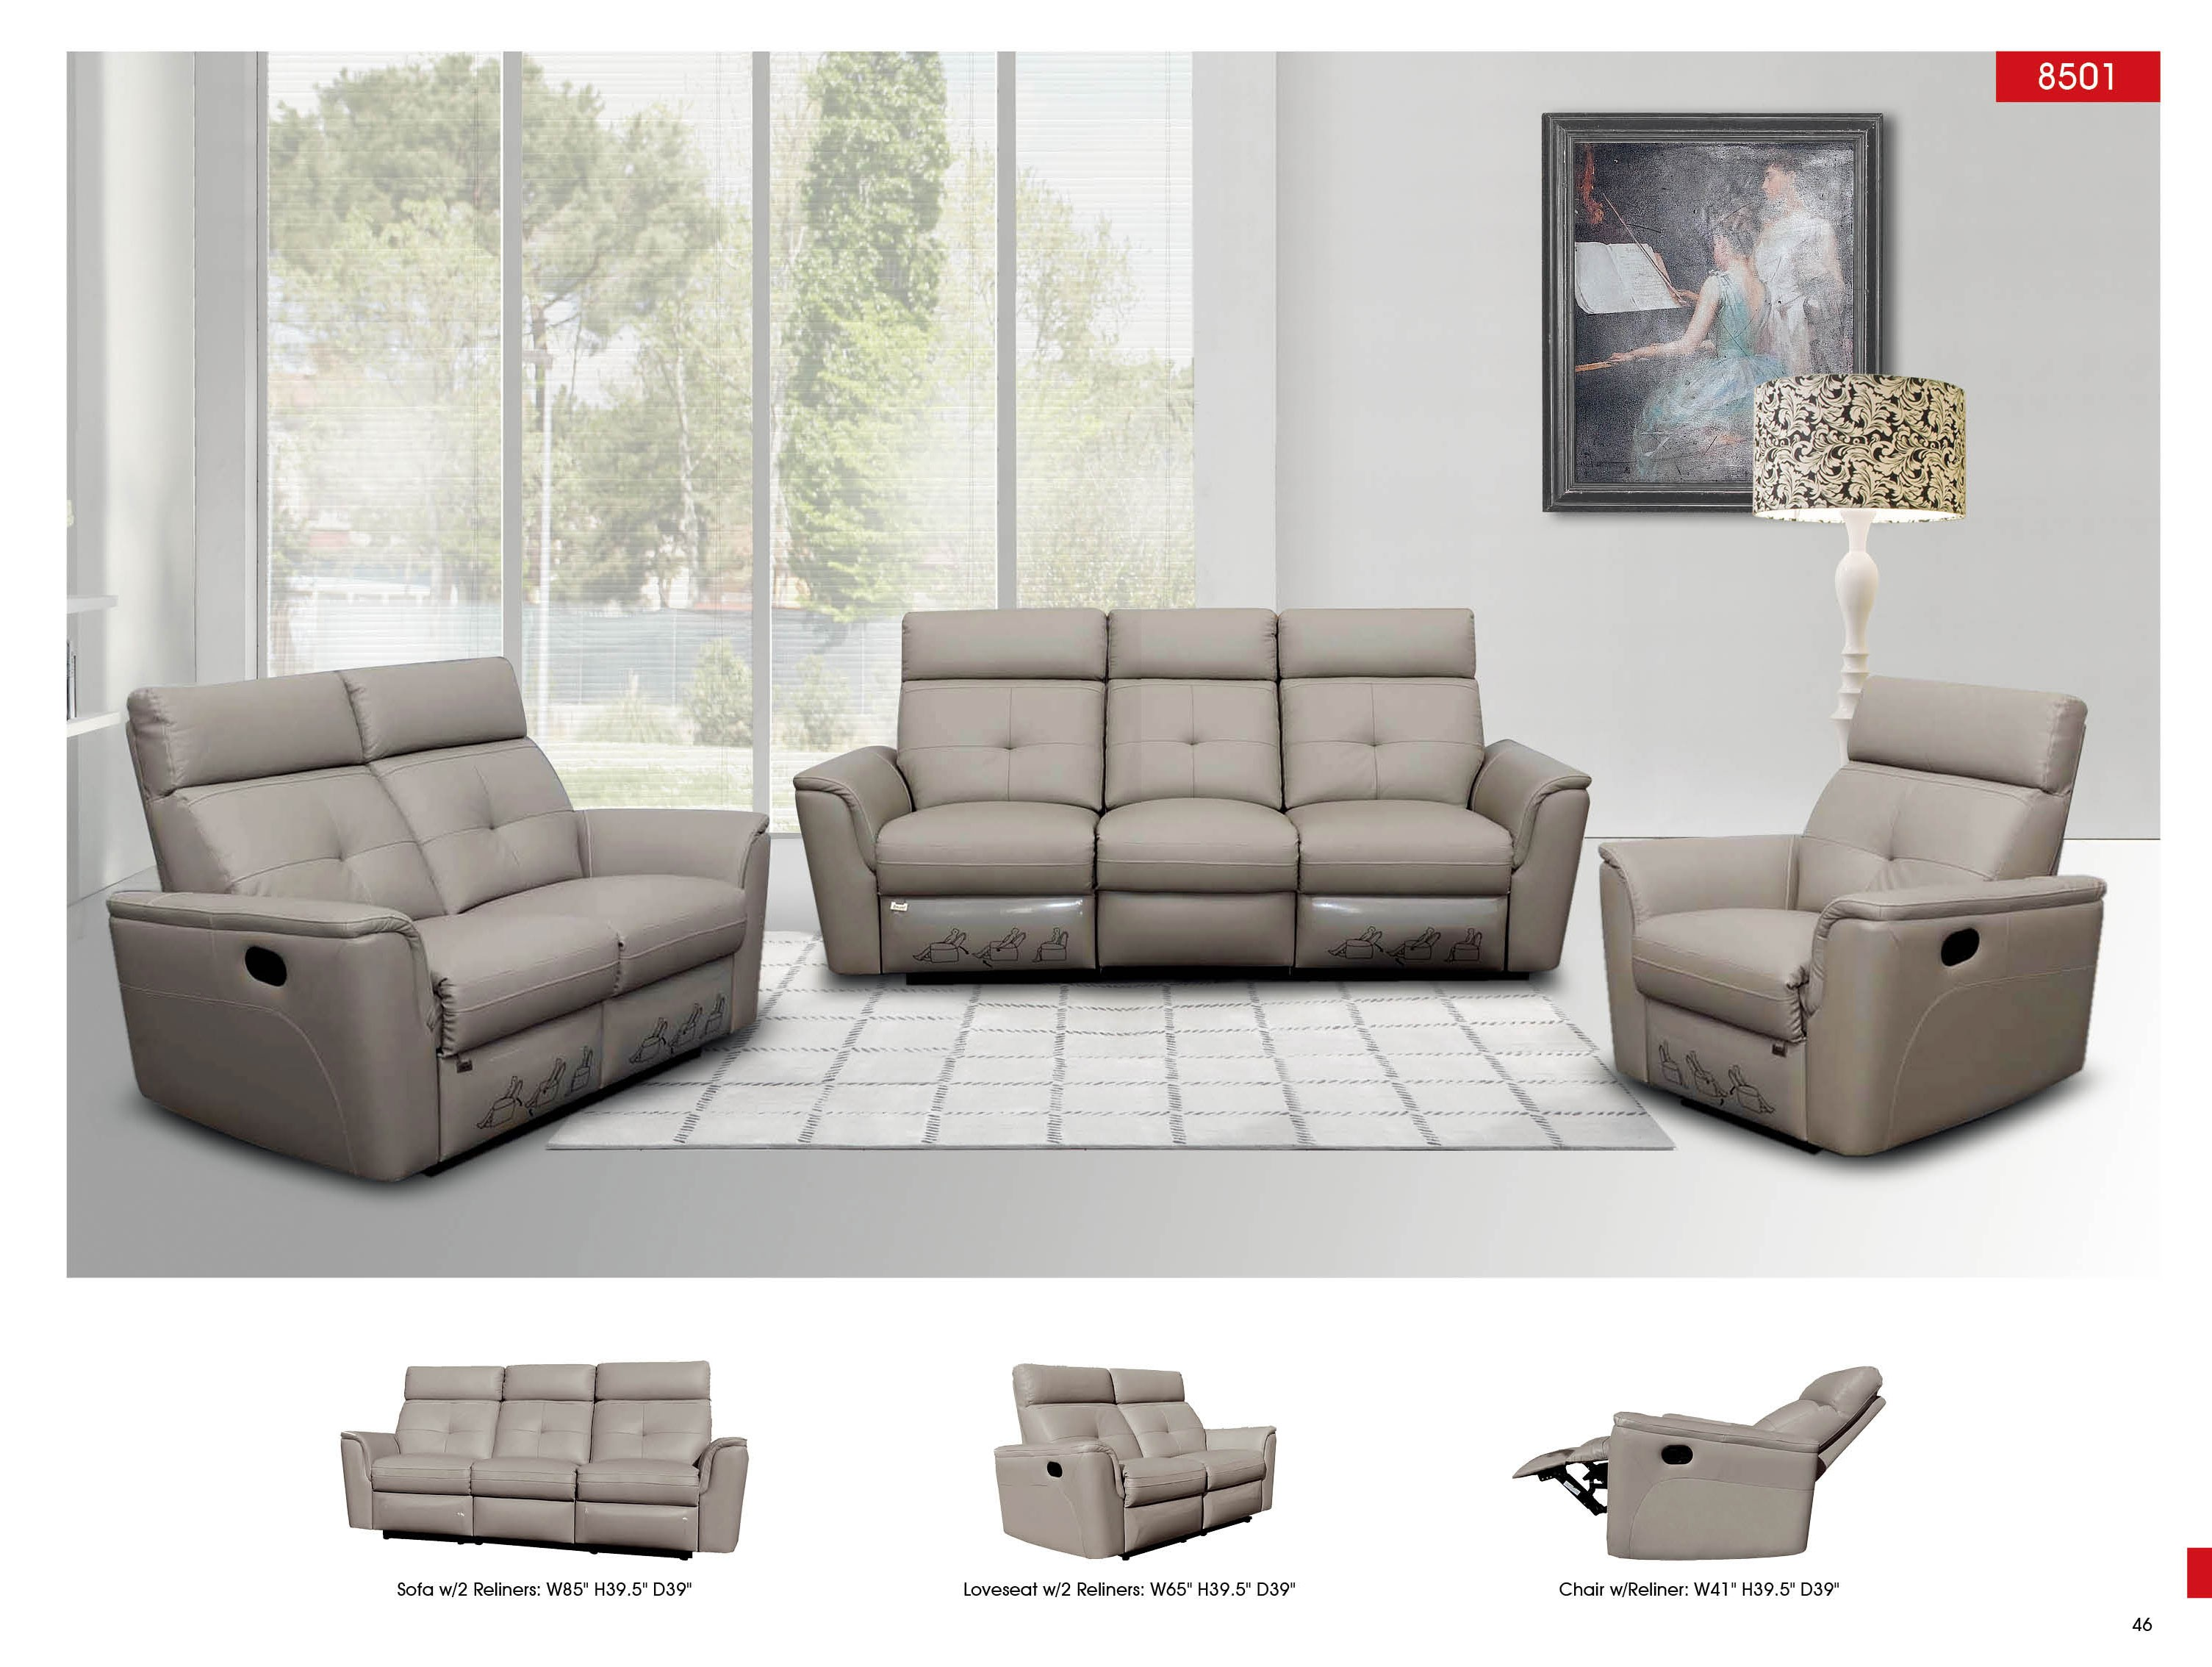 8501 contemporary contemporary reclining leather sofa nova interiors for Contemporary living room chairs